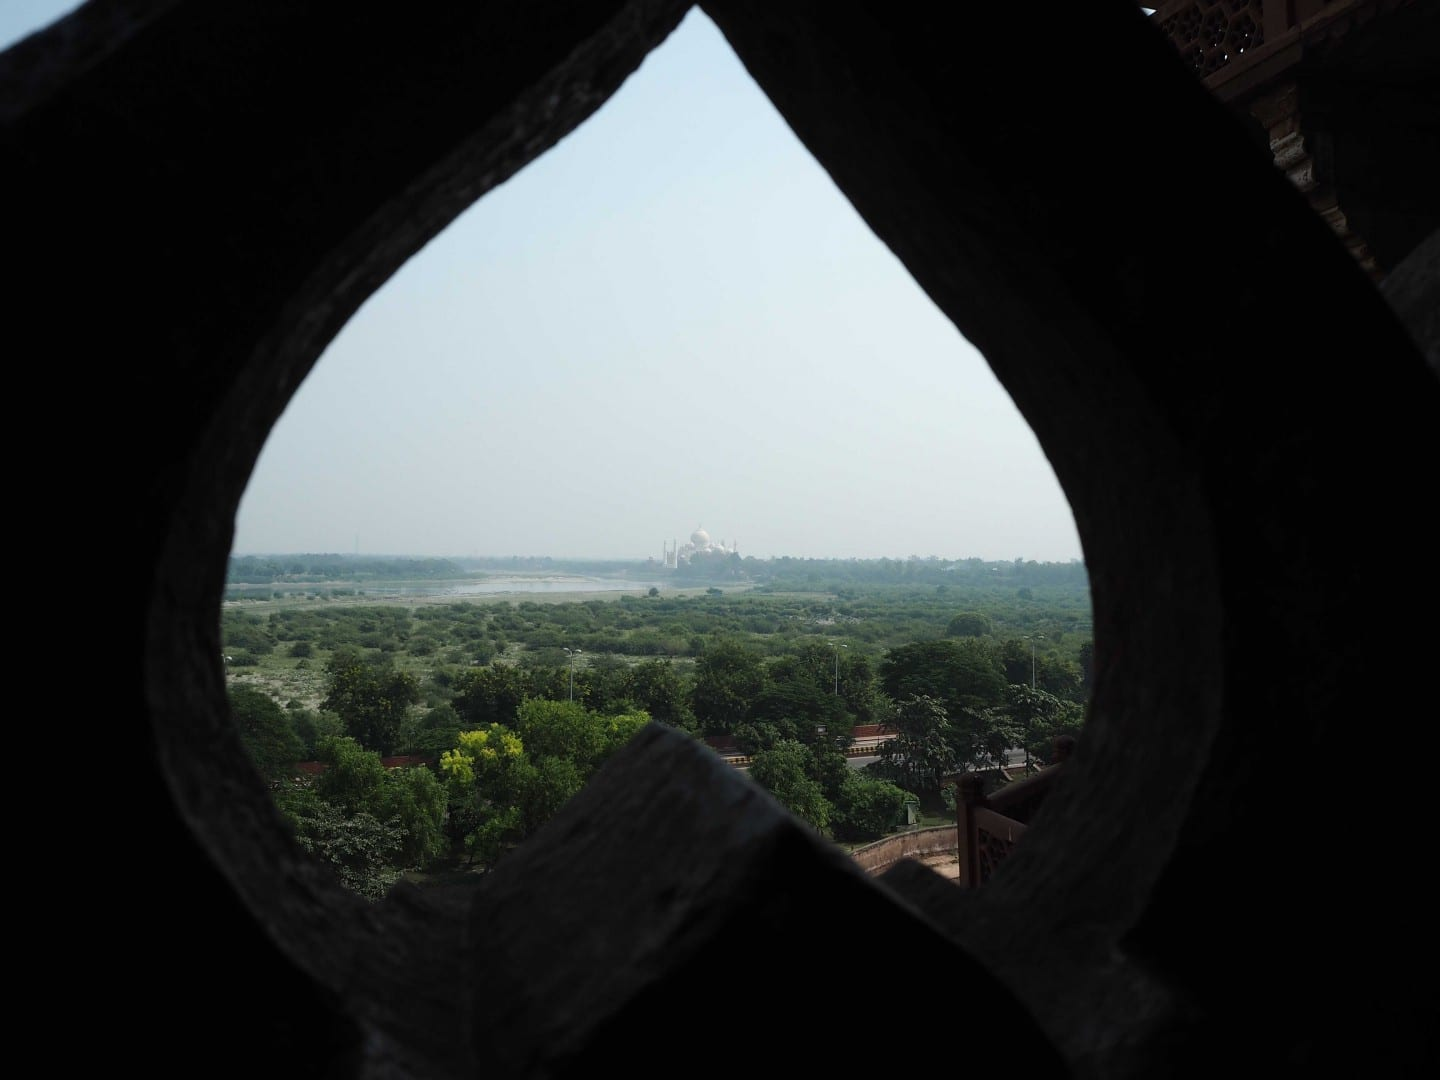 AGRA FORT VIEW